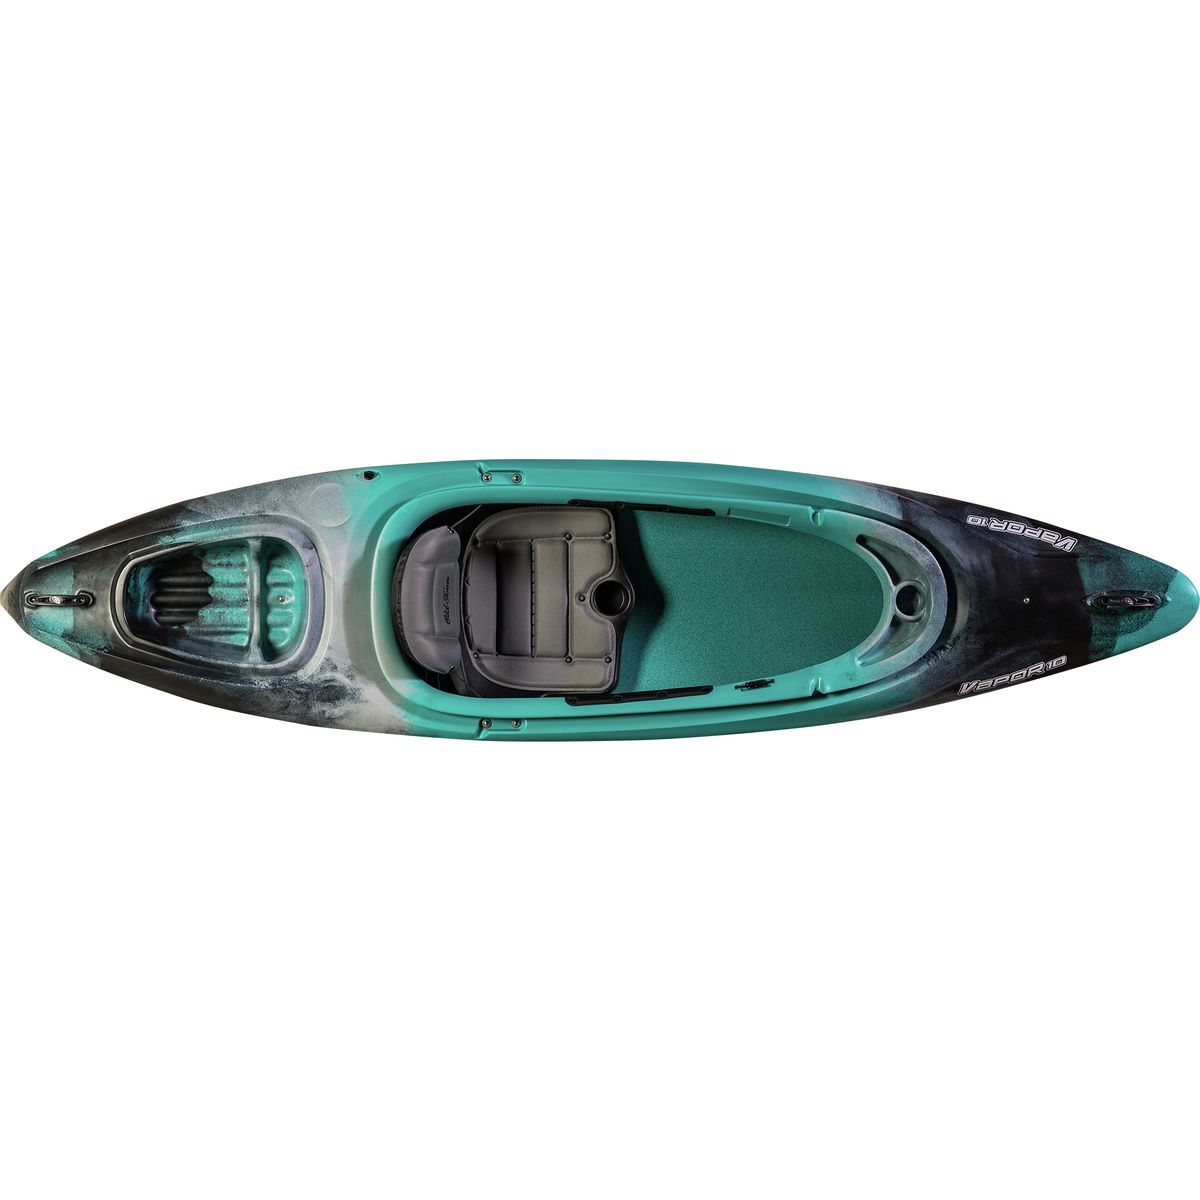 photo: Old Town Vapor 10 recreational kayak